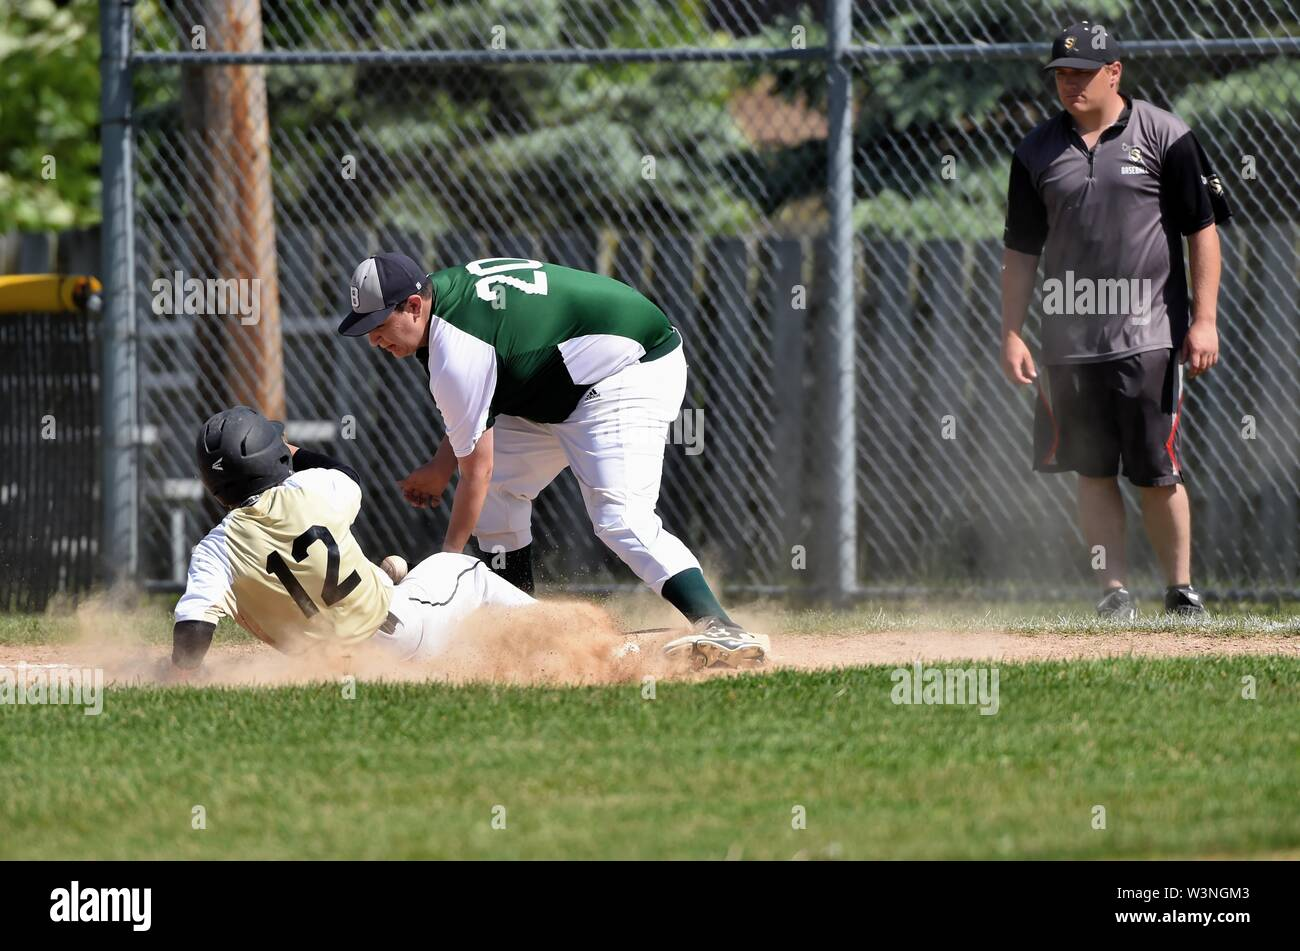 The Sabres' Colim Blanchard sliding safely back into first base to avoid a double play man nas the Hawks; first baseman Denny Garza was unable to secu - Stock Image